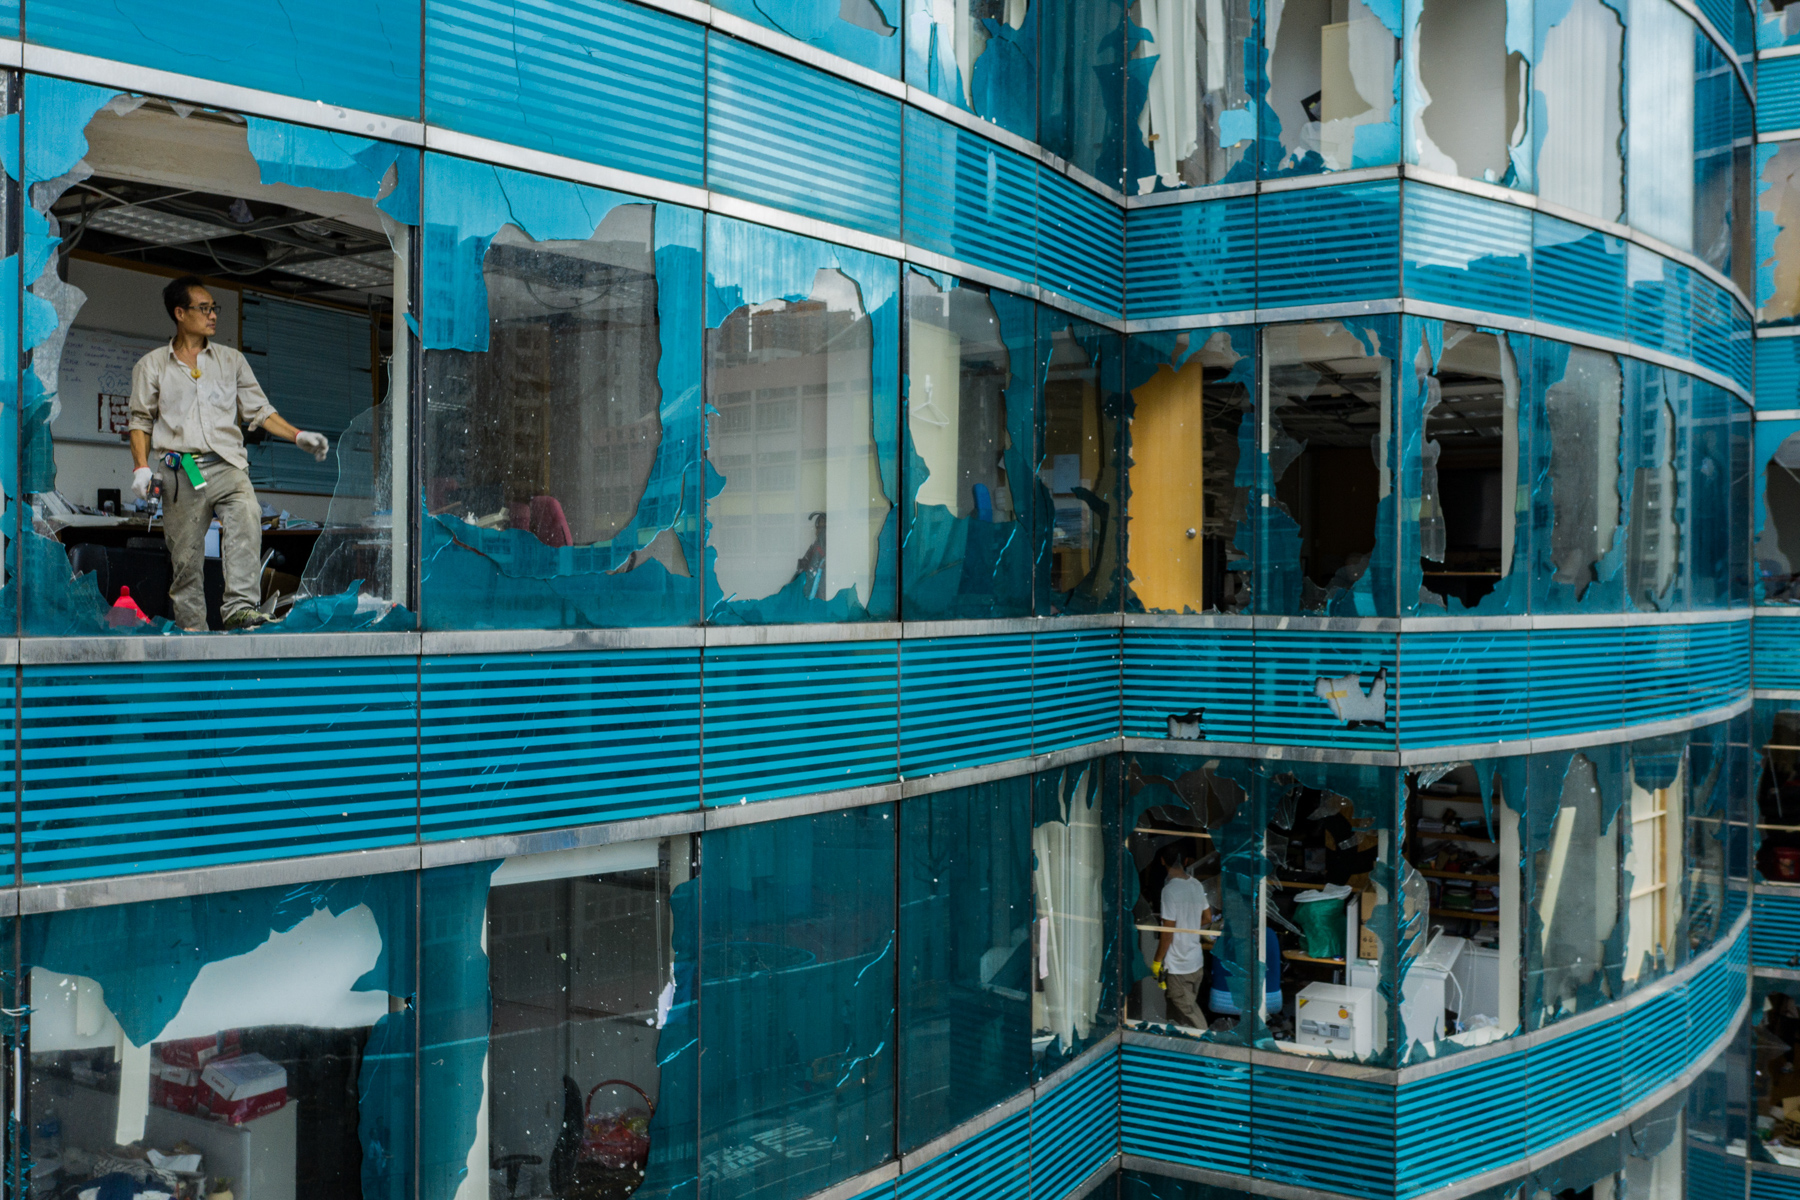 The aftermath of Typhoon Mangkhut in Hong Kong, September 17. According to meteorologists, Mangkhut was the world's most powerful storm in 2018. (Lam Yik Fei/Getty Images)